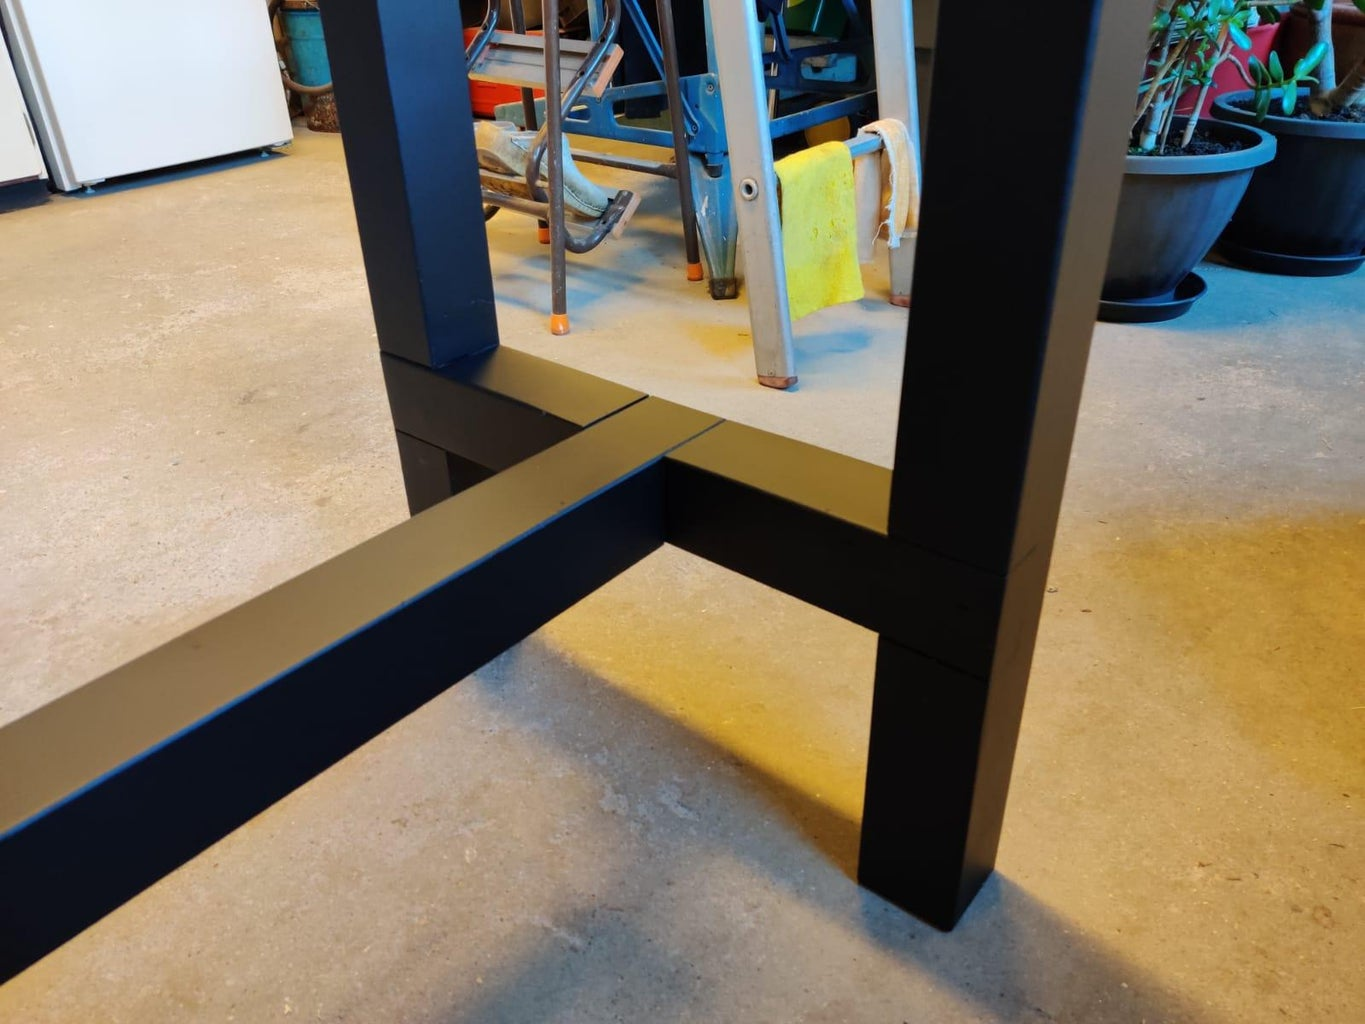 Painting the Legs and Constructing the Frame on Top